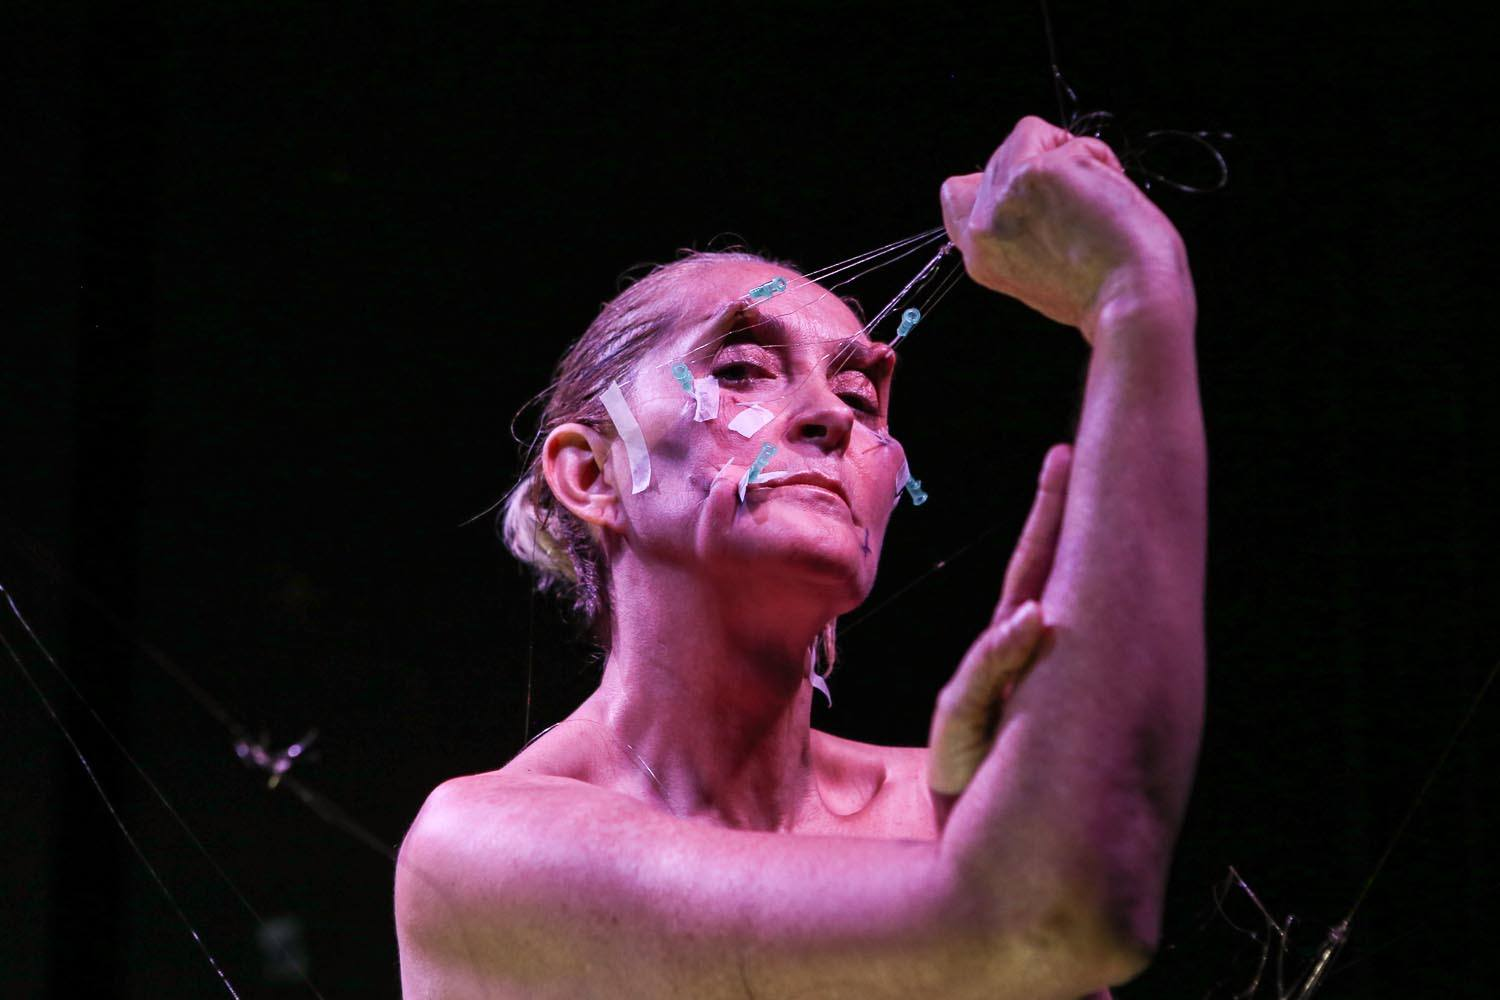 The artist pulls on wire attached to hooked needles in her face, stretching the skin.